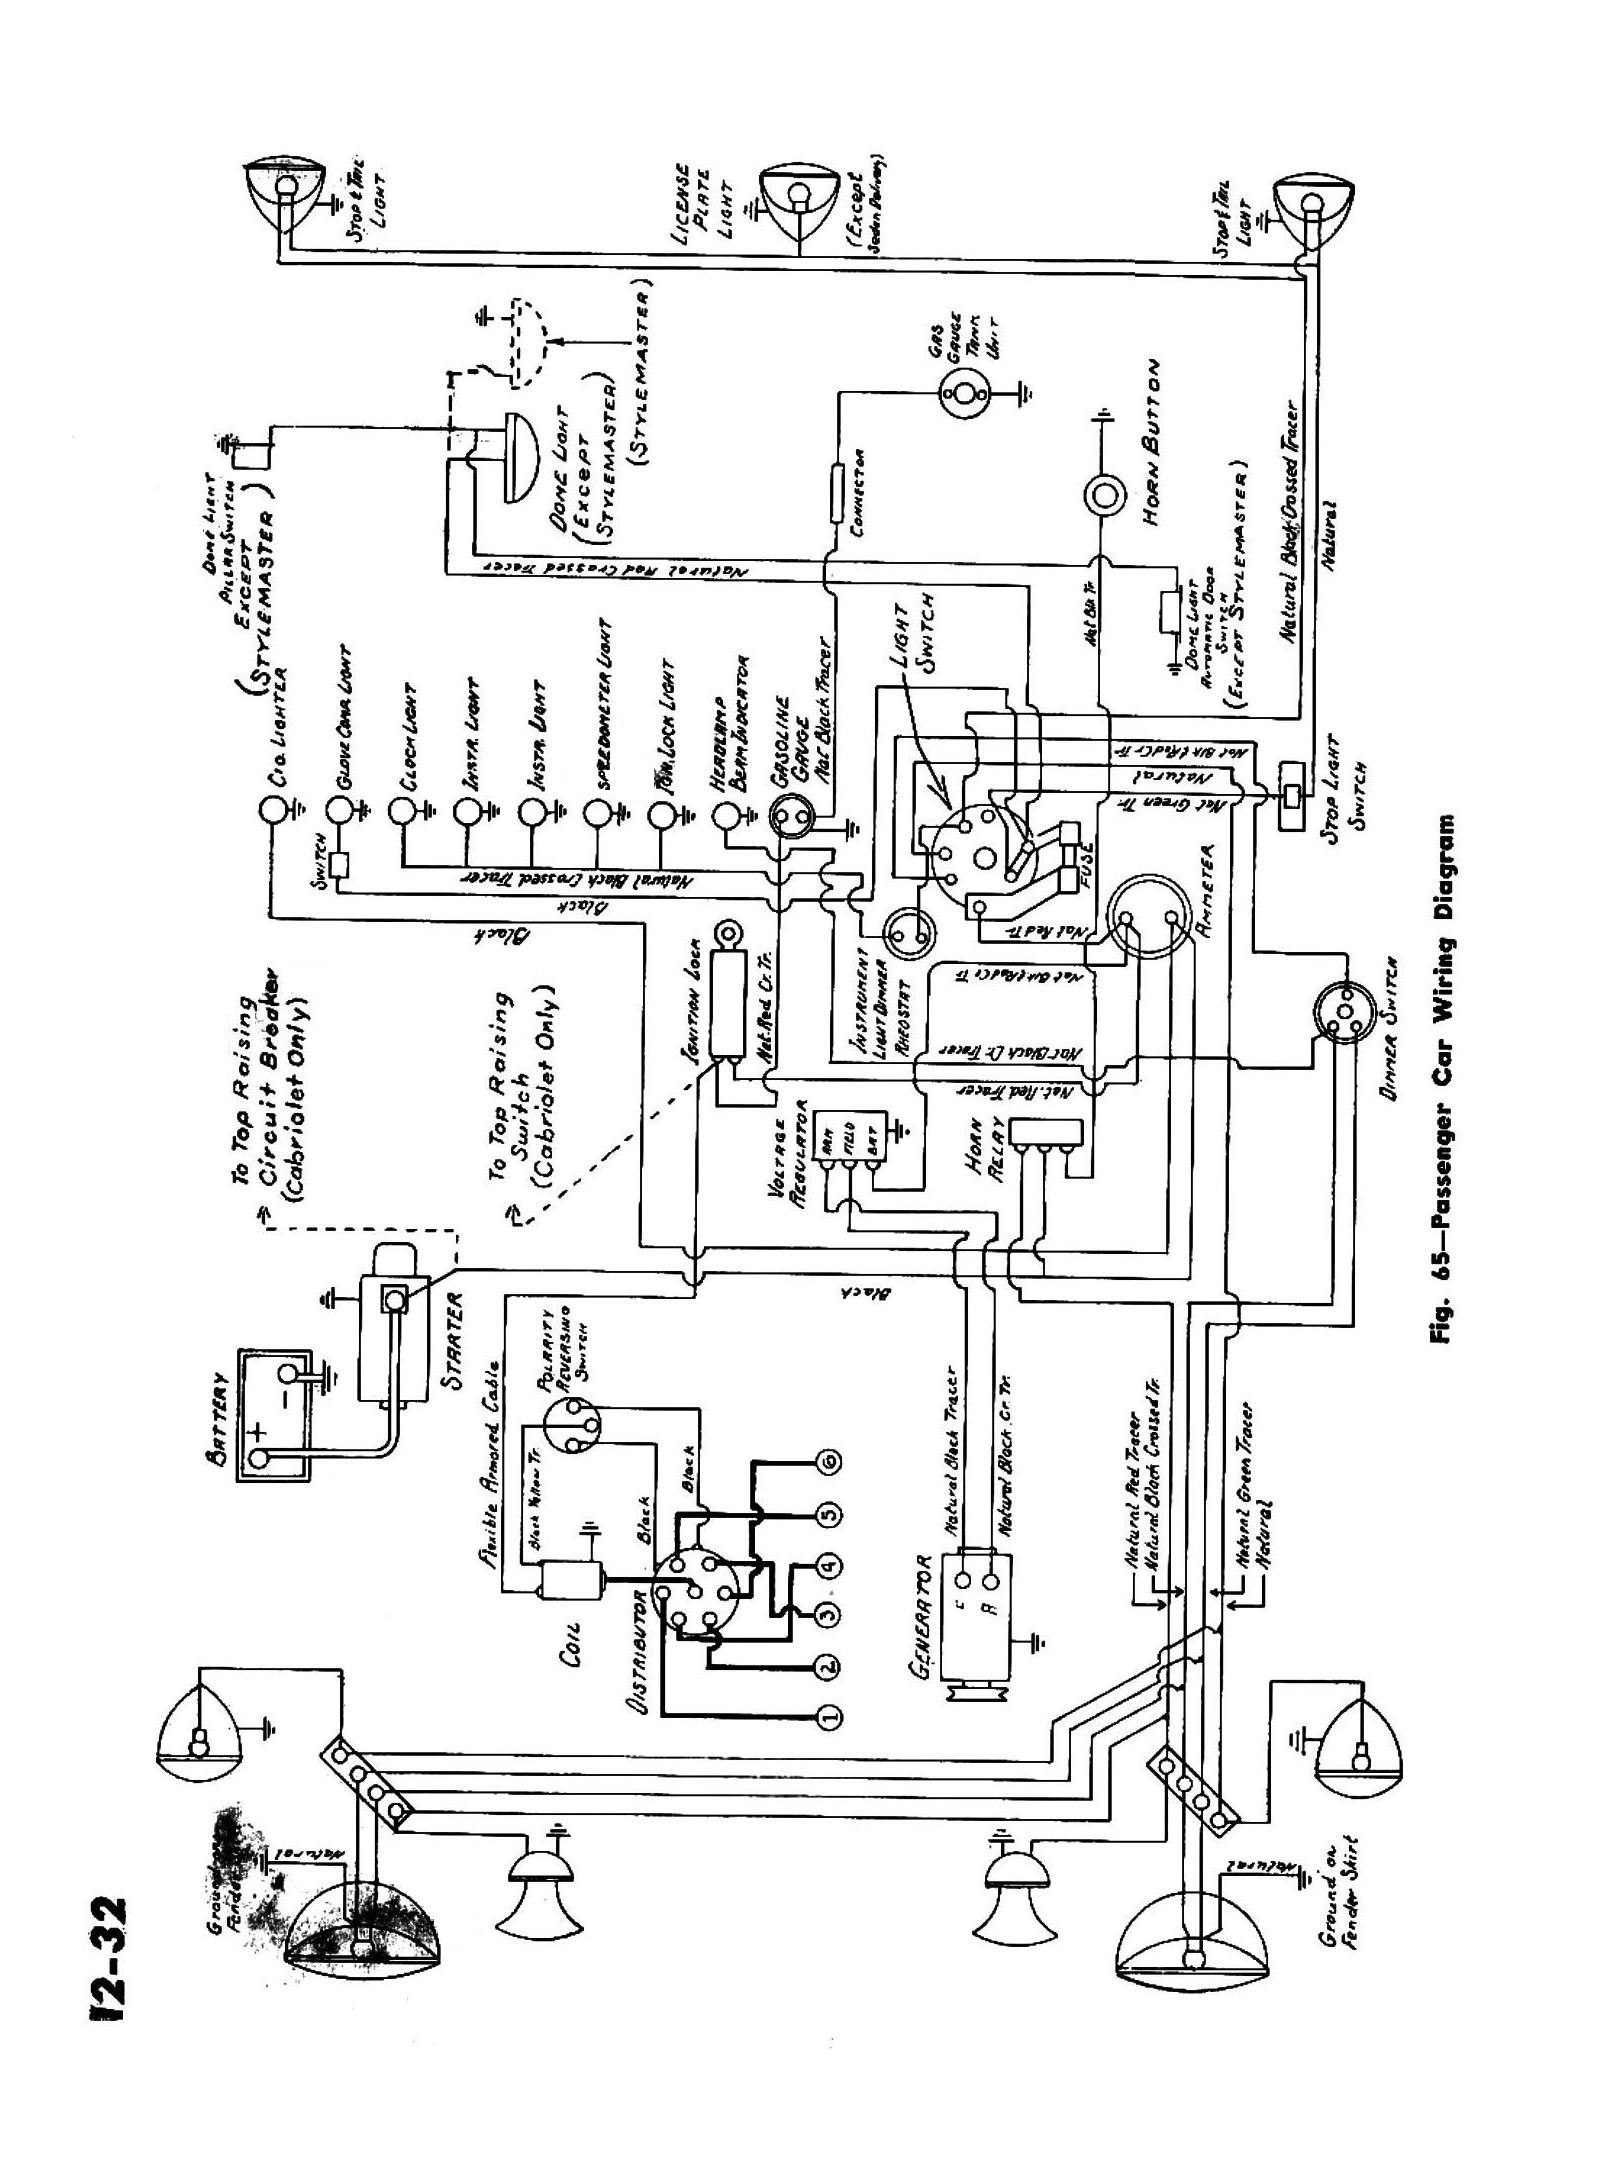 45car chevy wiring diagrams electrical wiring diagrams for cars at bayanpartner.co